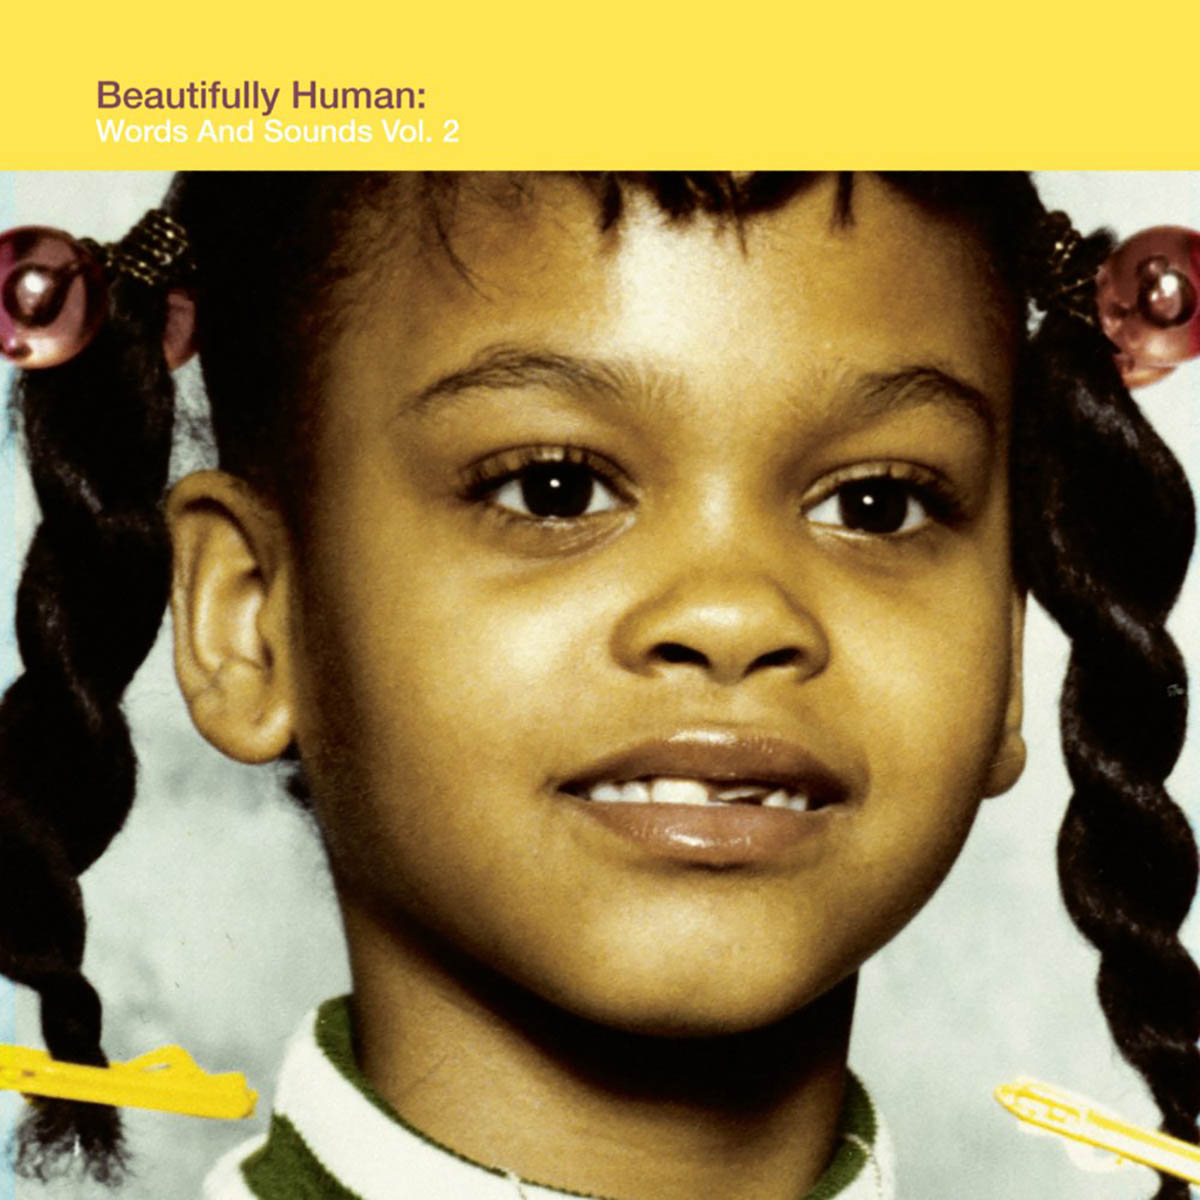 Jill Scott, Beautifully Human: Words And Sounds Vol. 2